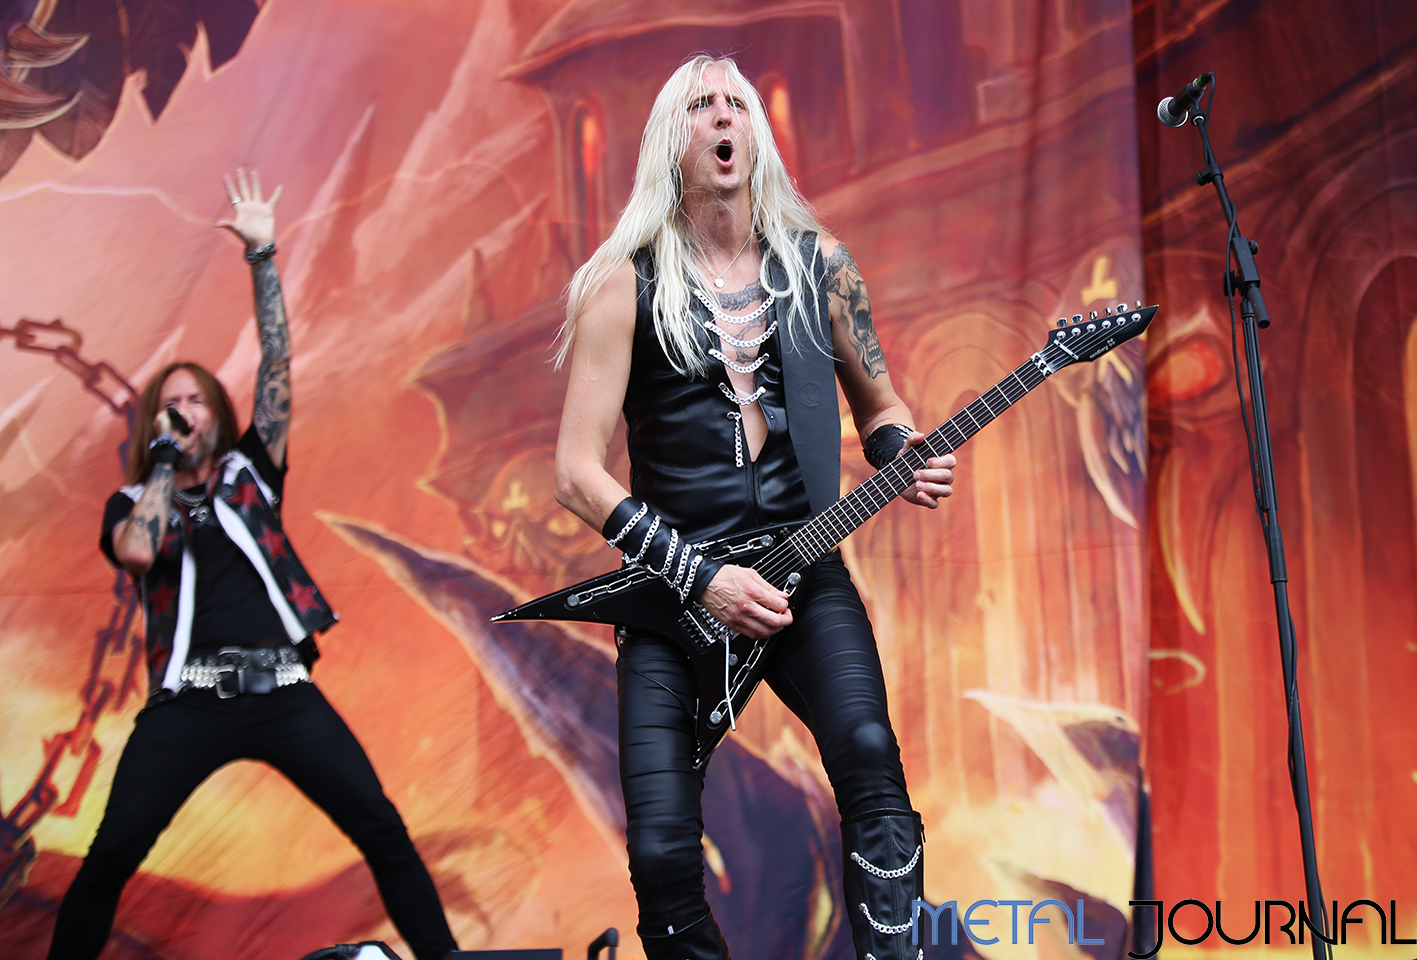 hammerfall - metal journal rock fest barcelona 2019 pic 7